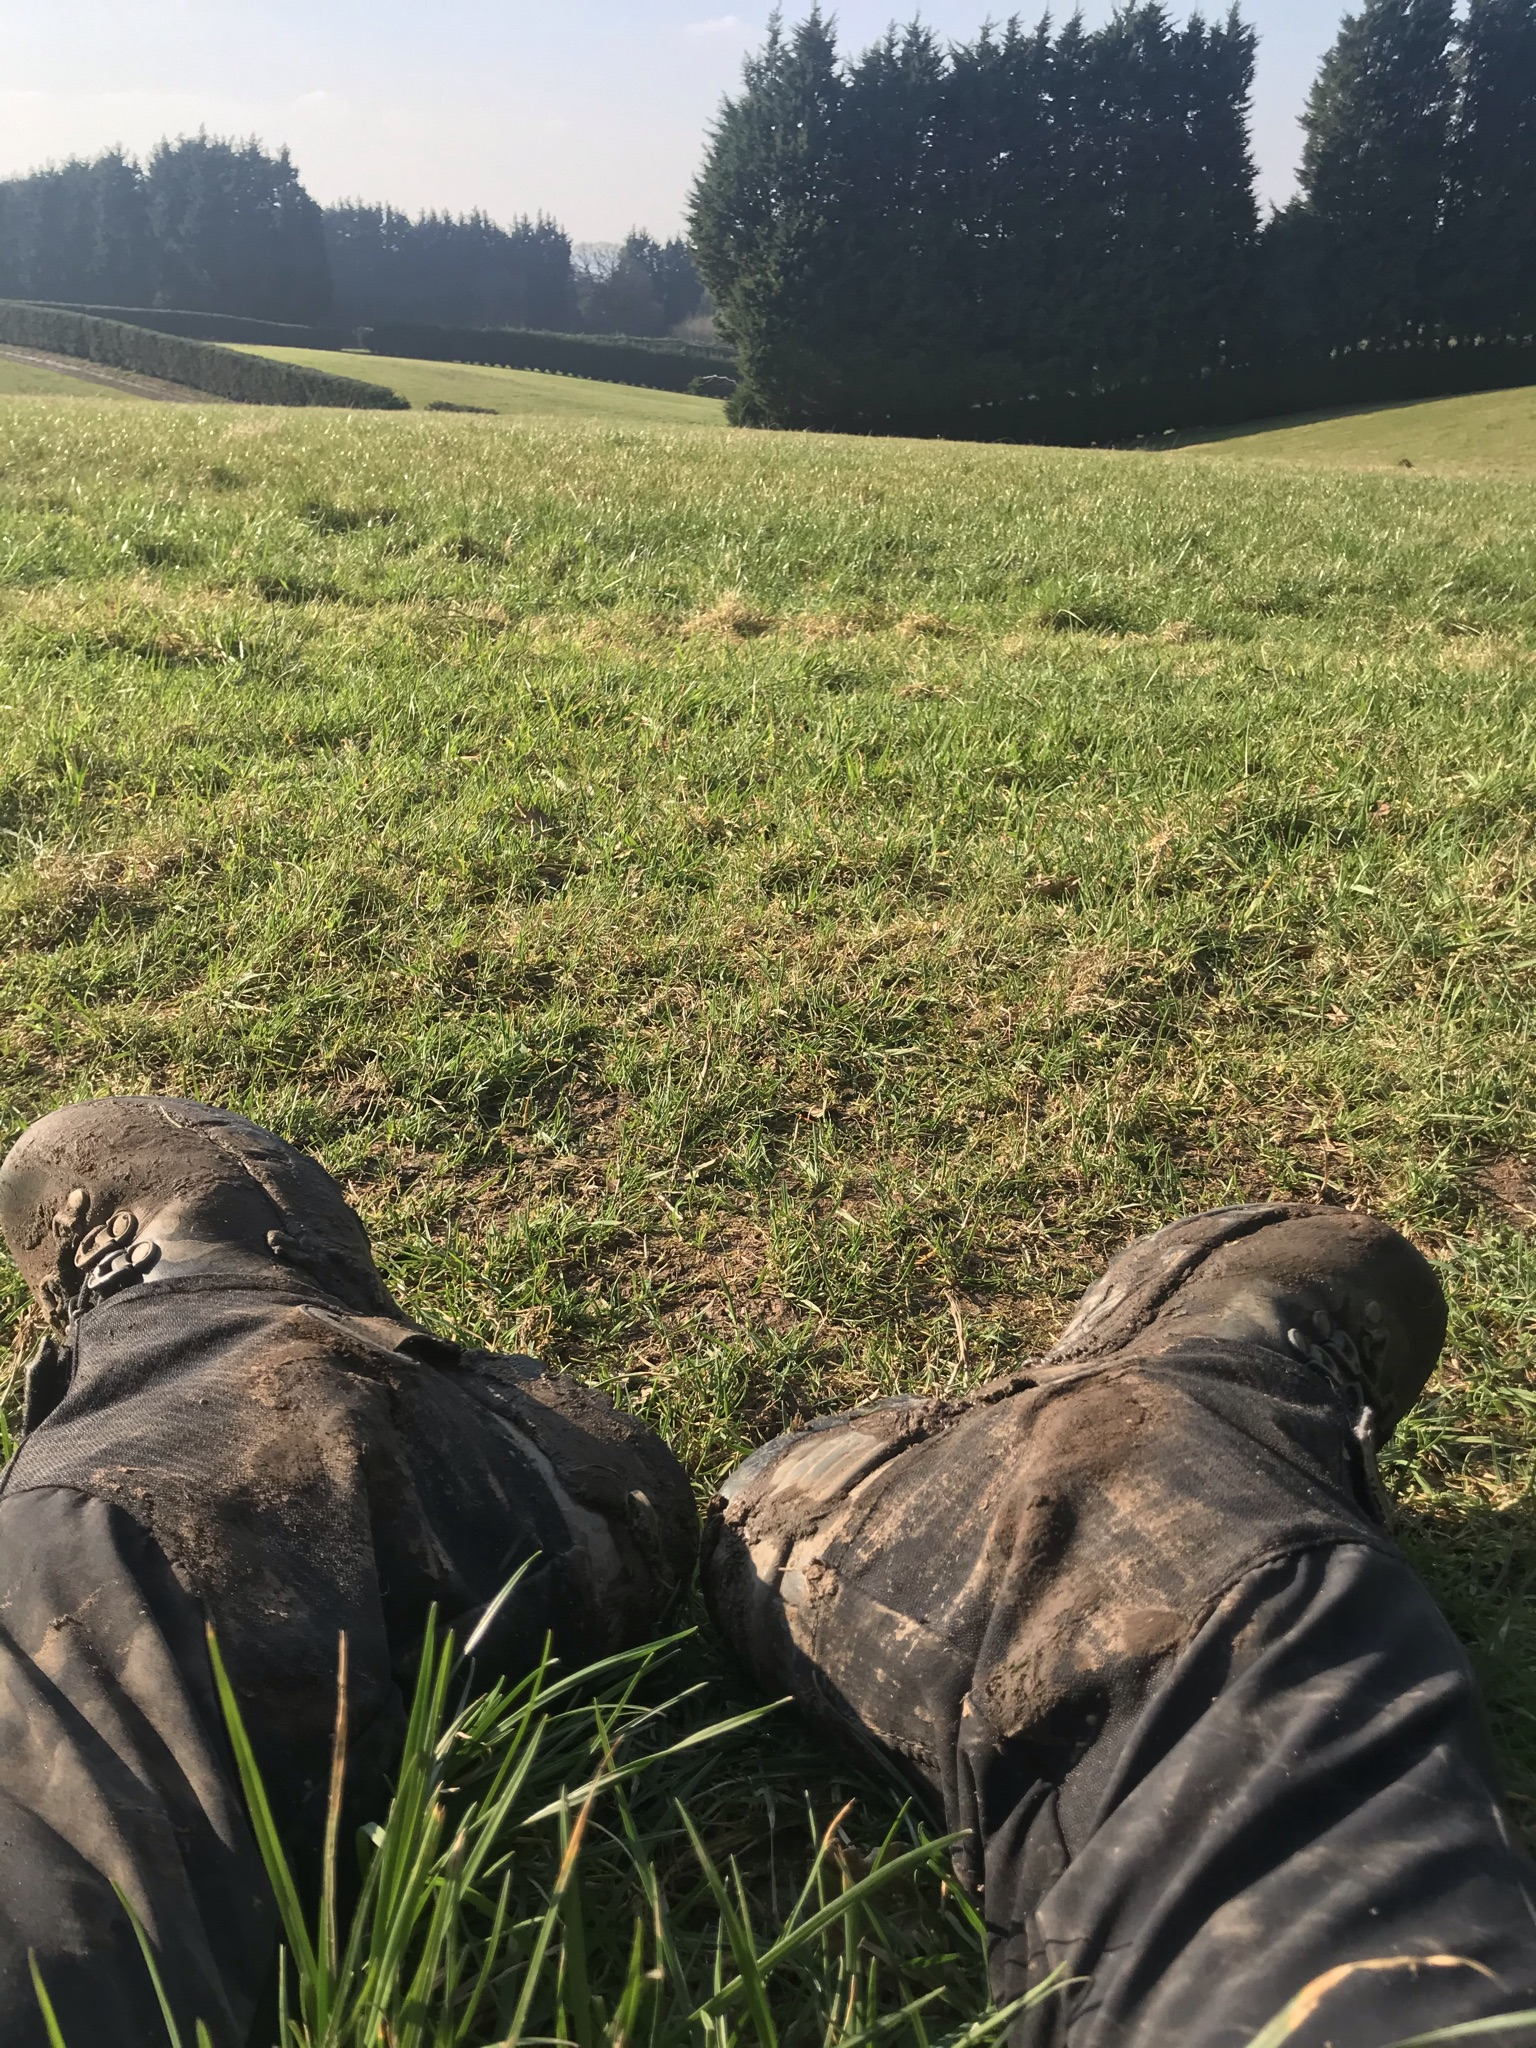 muddy boots of a person sat on the grass. The fields are gently rolling in the background and there are tall thick trees and neat hedges